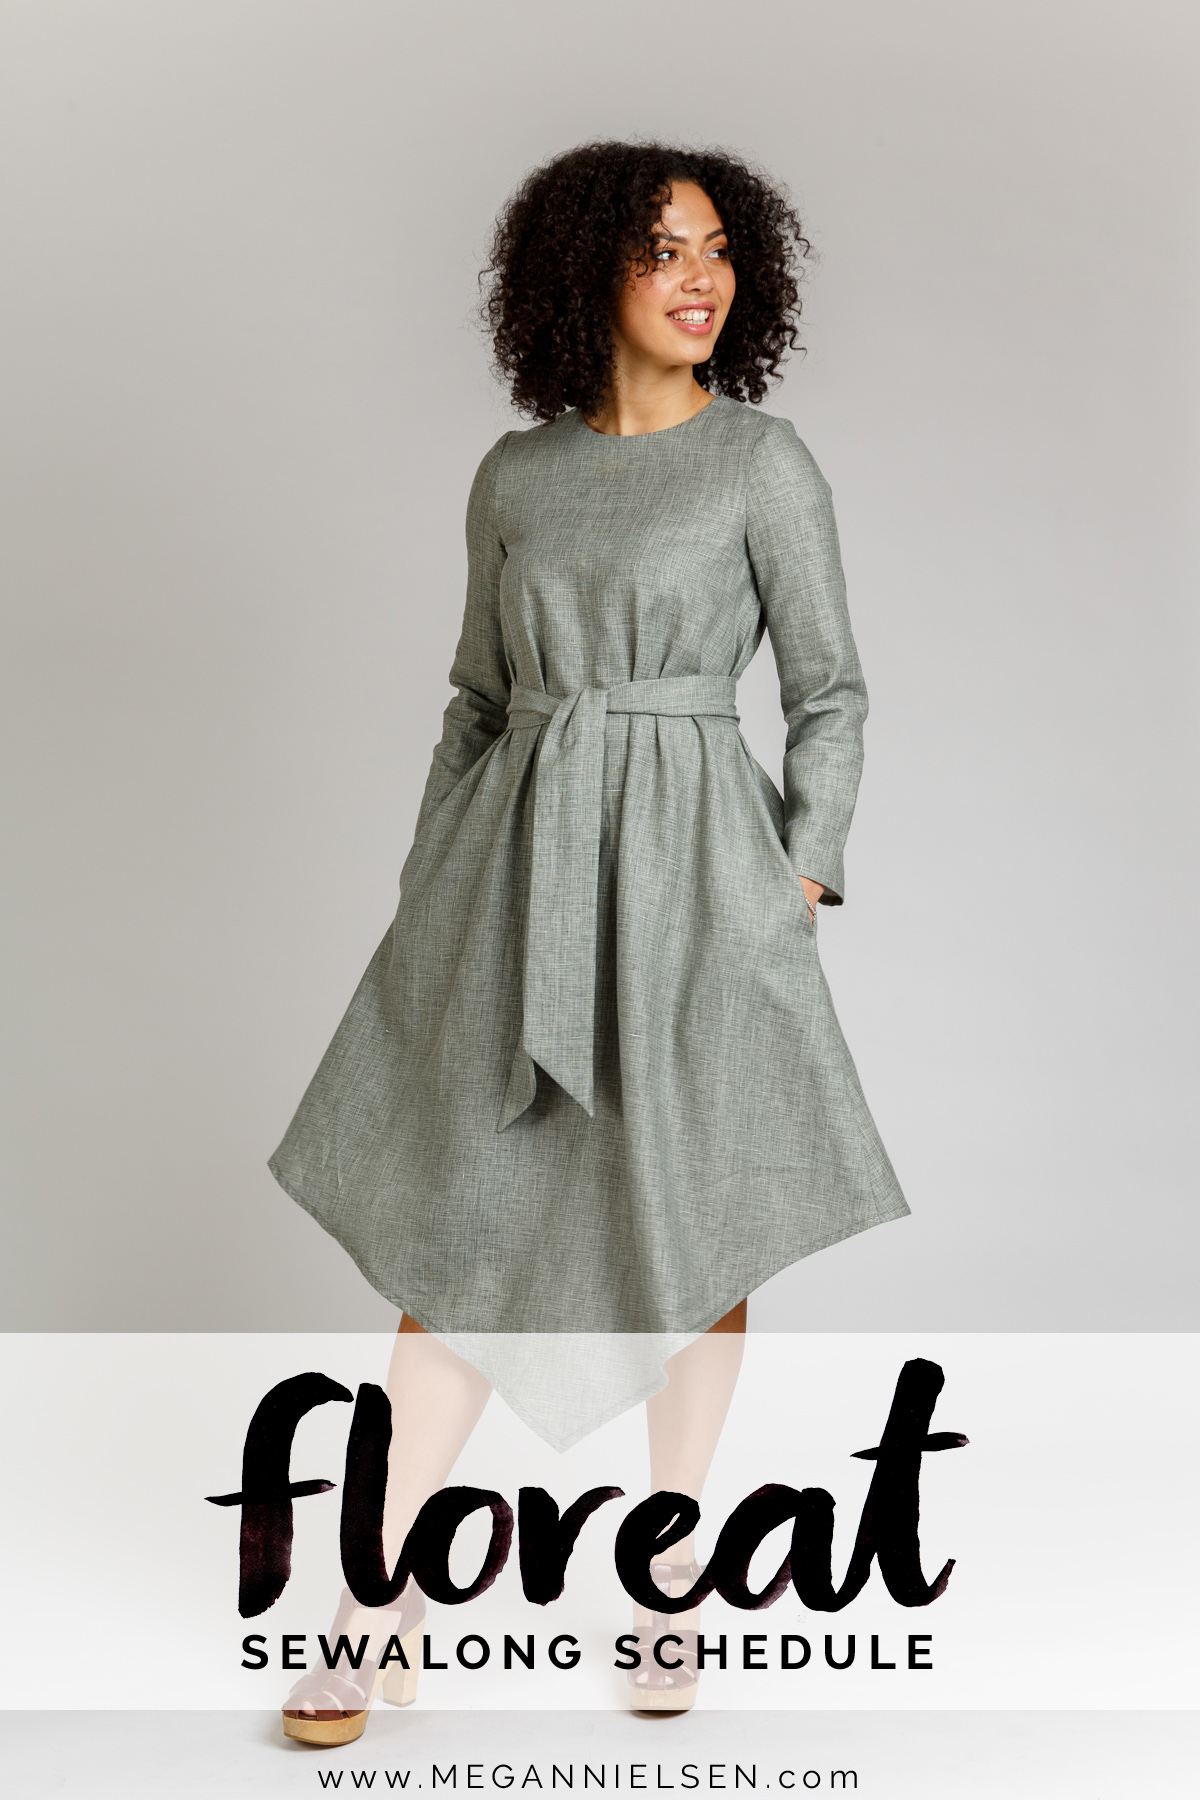 sewalong schedule for the Floreat dress and blouse by Megan Nielsen Patterns